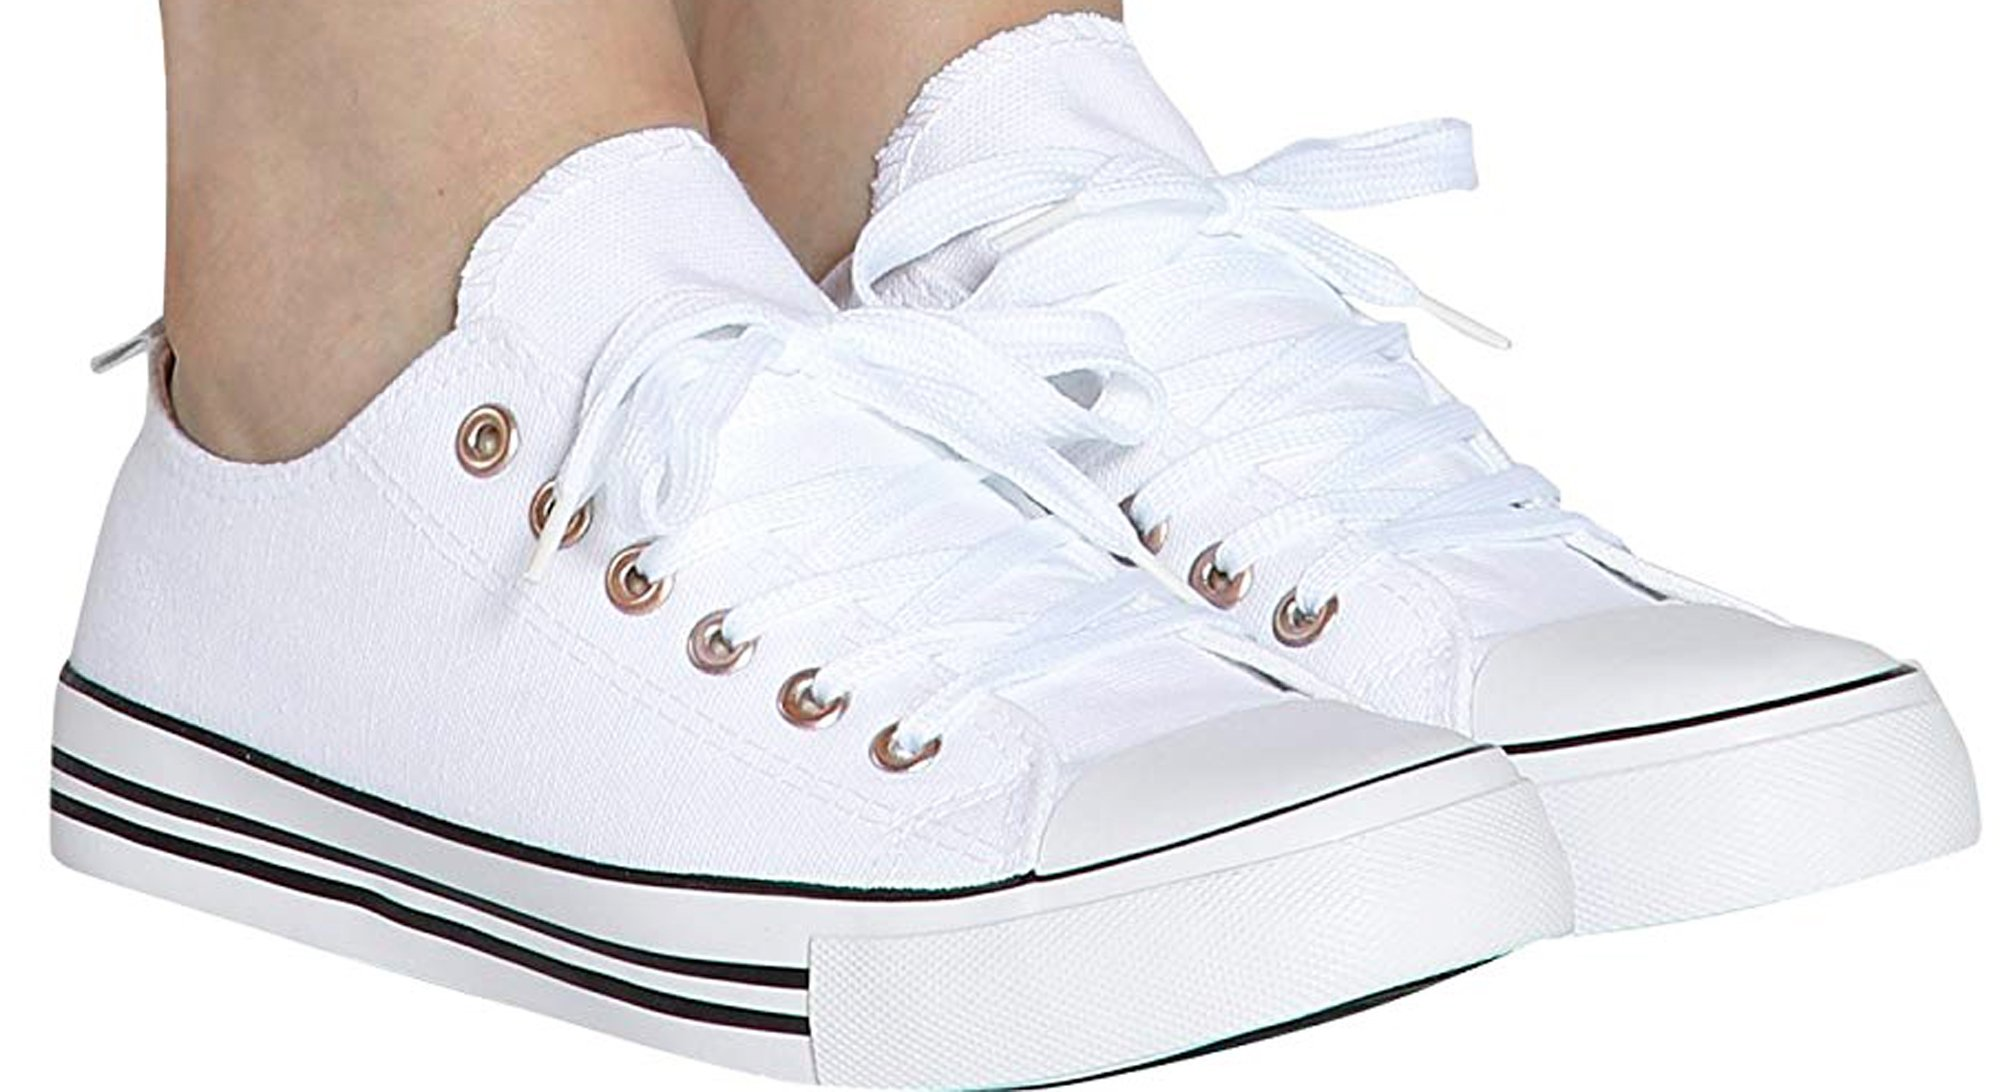 Shop Pretty Girl Women's Sneakers Casual Canvas Shoes Solid Colors Low Top Lace up Flat Fashion (9, White Classic)